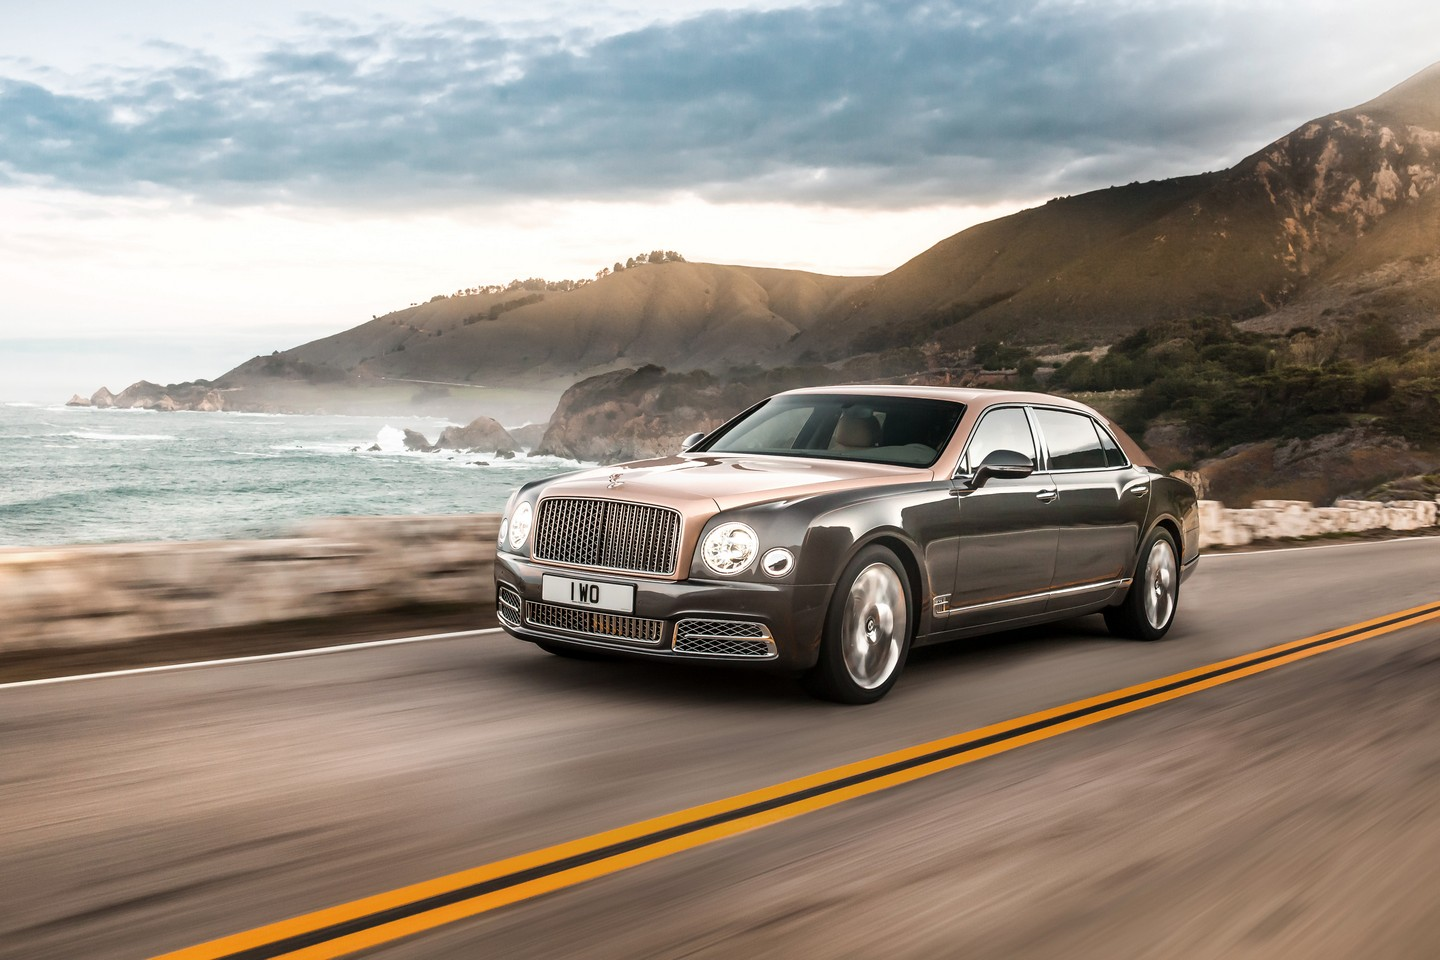 2016 Bentley Mulsanne facelift